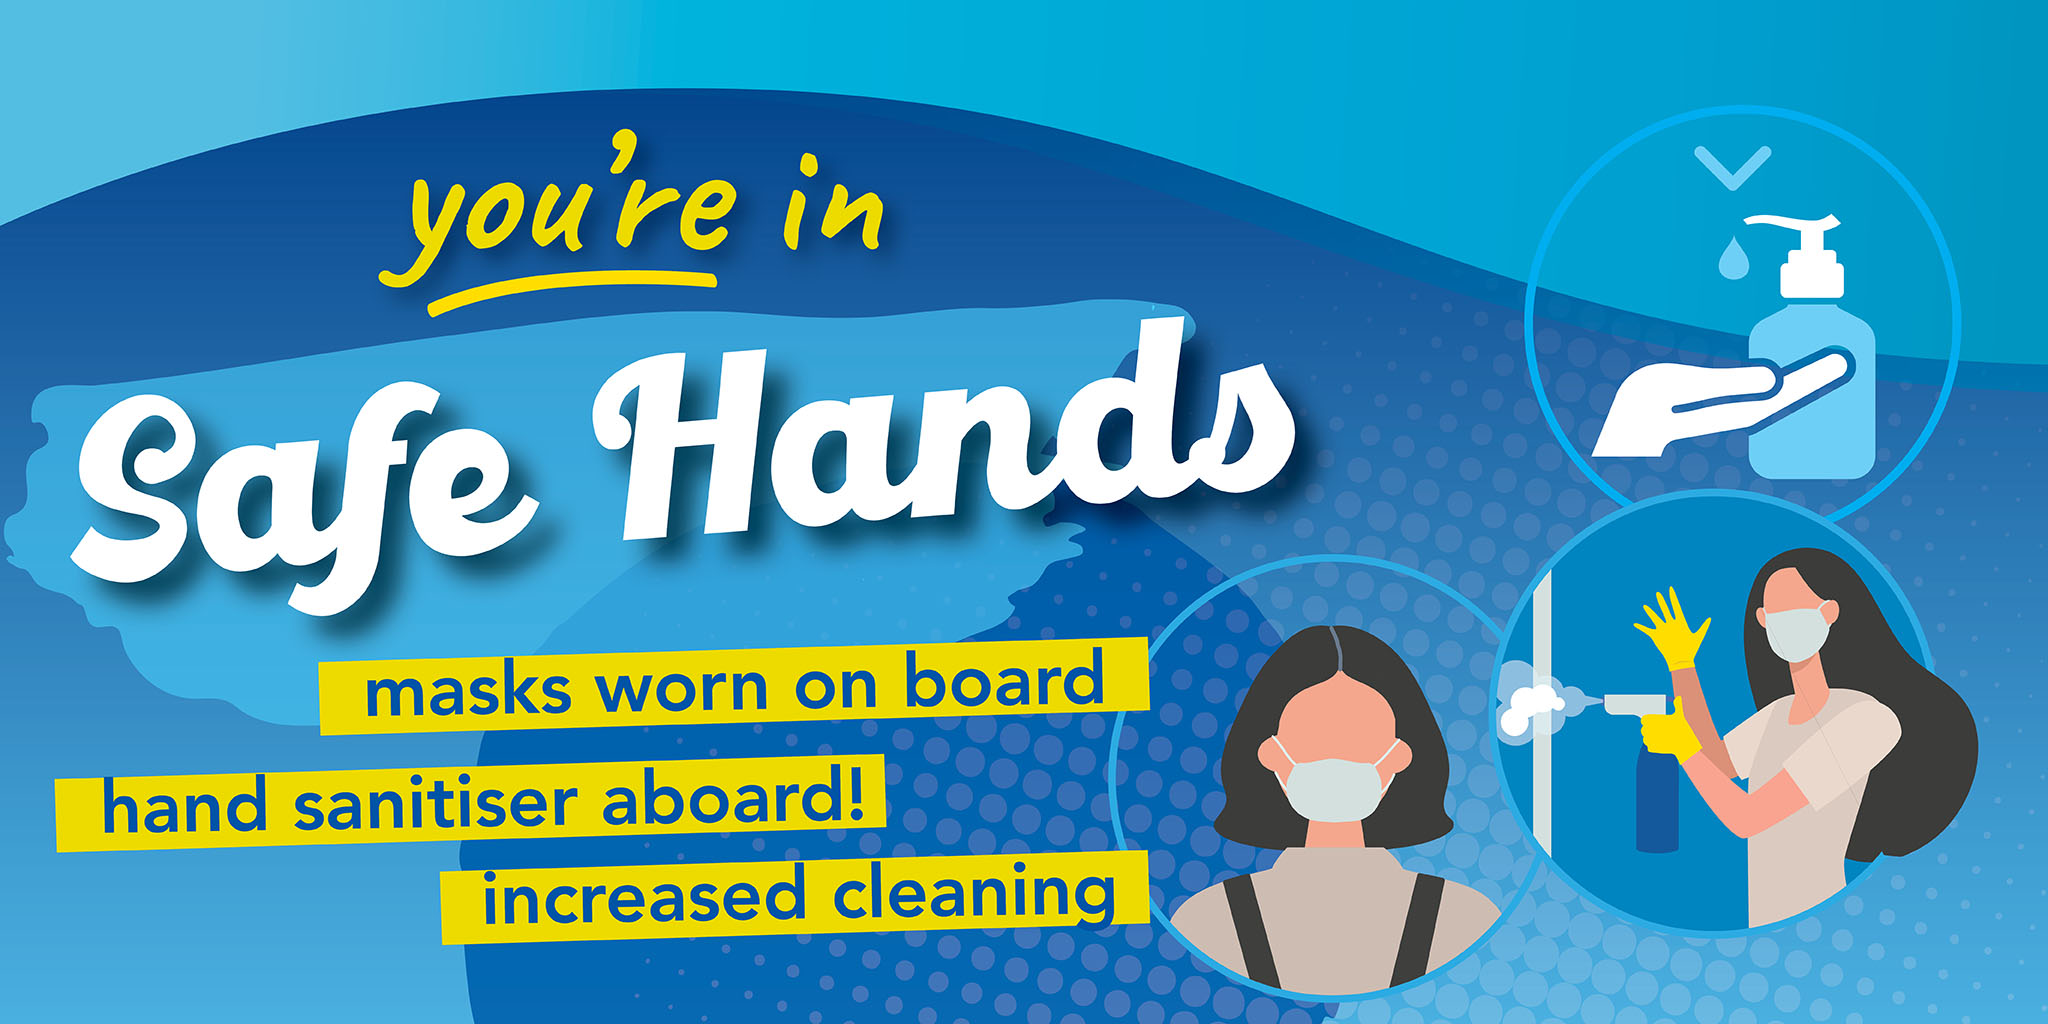 Image reading 'you're in safe hands' with an image of hand sanitiser, a person wearing a face covering and someone cleaning. Text reading 'Masks worn on board. Hand sanitiser aboard! Increased cleaning.'